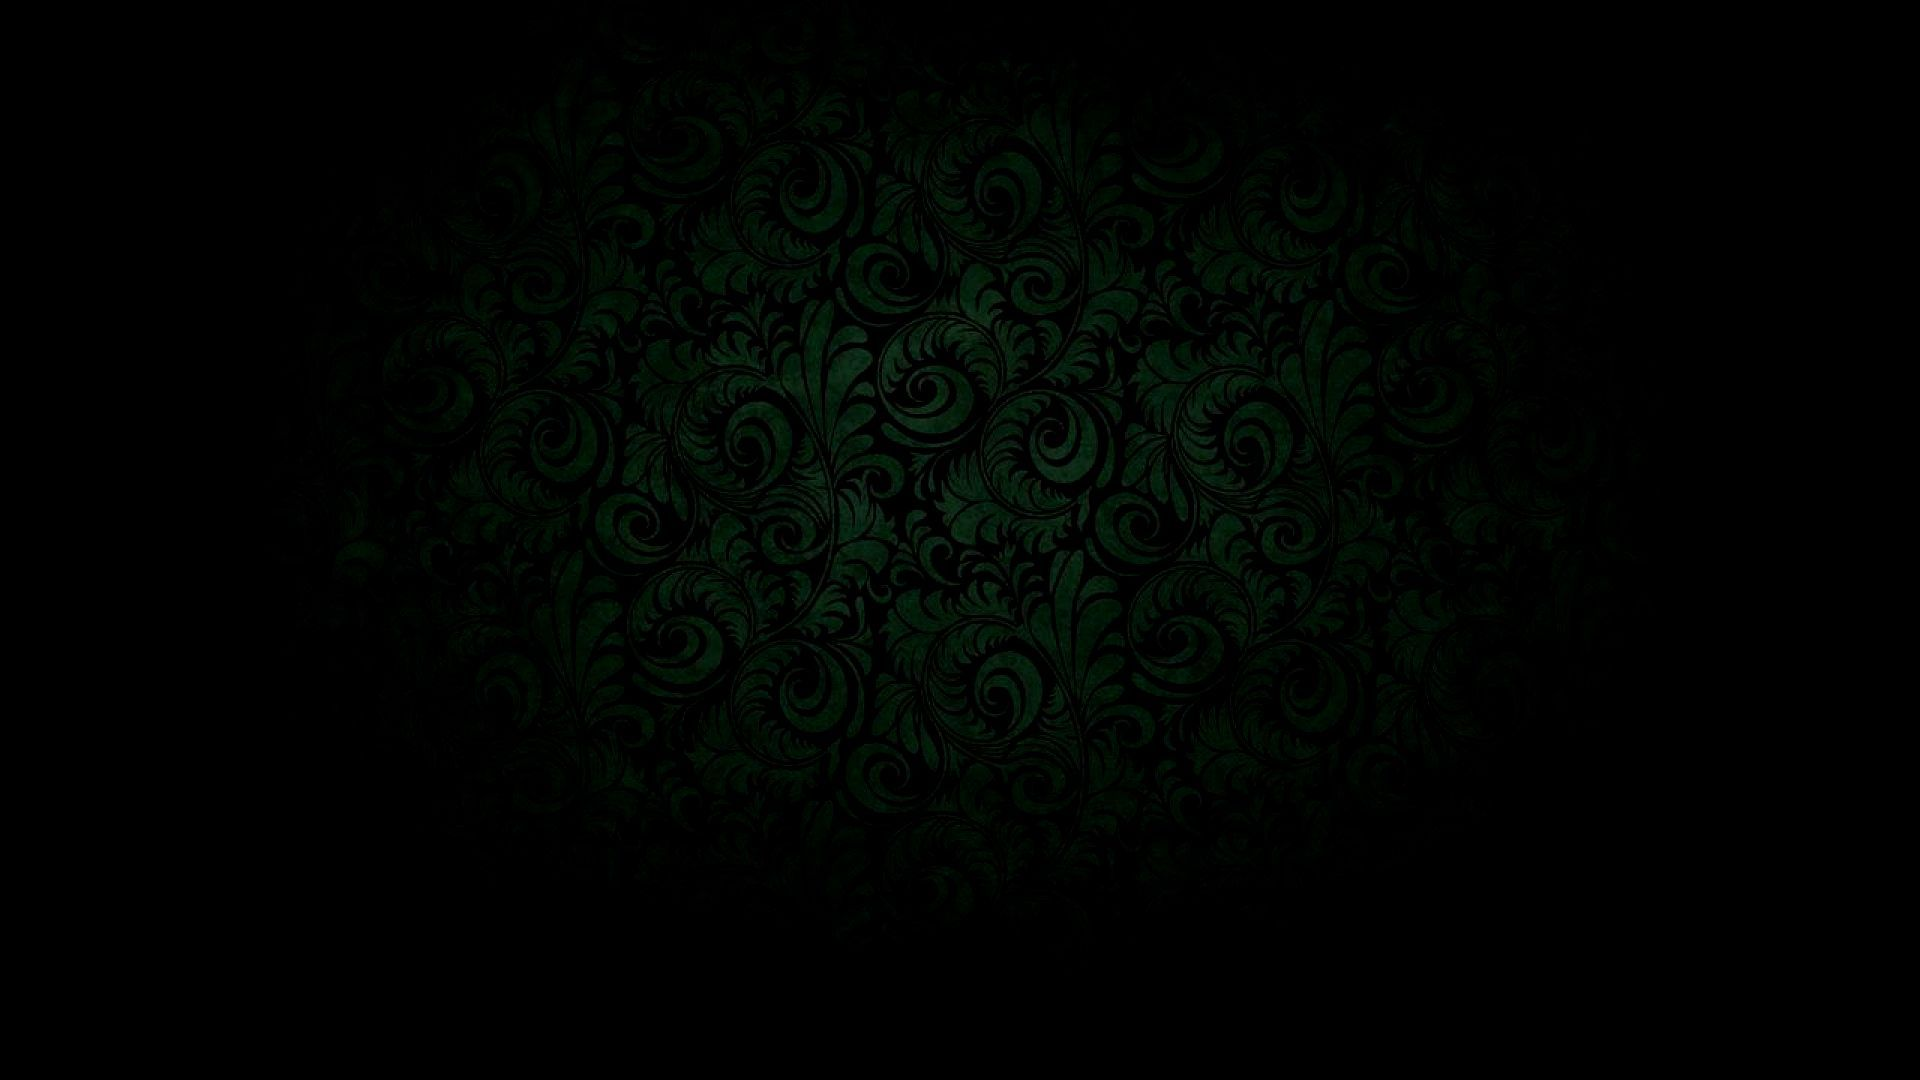 Green Black Wallpapers Posted By Ryan Peltier